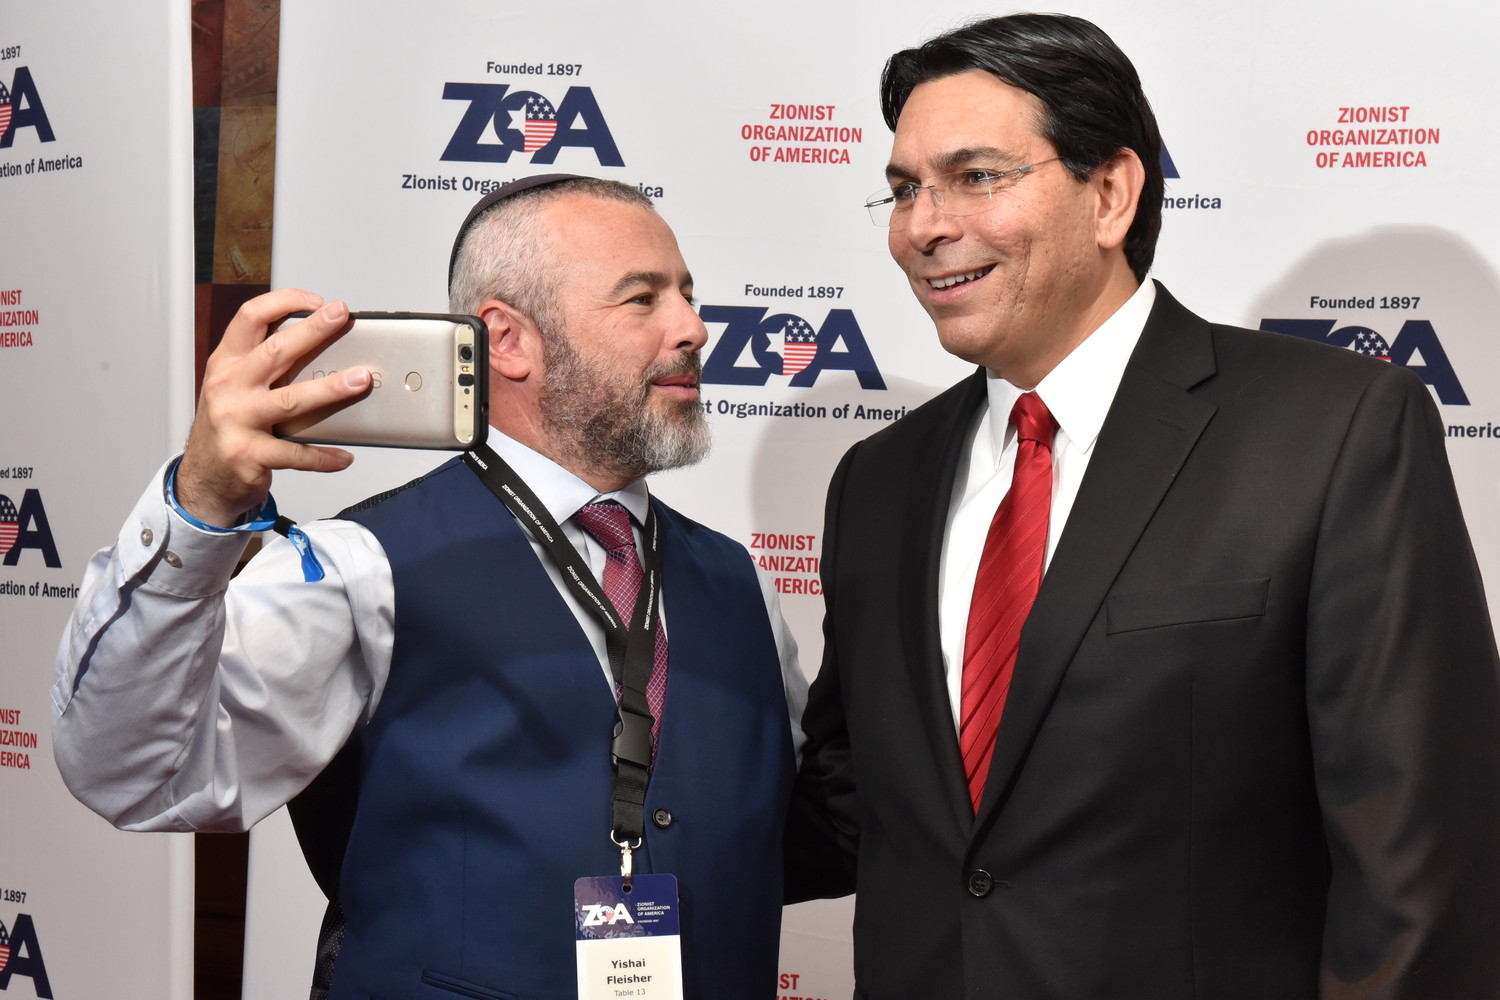 Yishai Fleisher, spokesperson for the Jewish community in Hebron, with Israel's UN ambassador, Danny Danon, at the Nov. 4 ZOA gala.